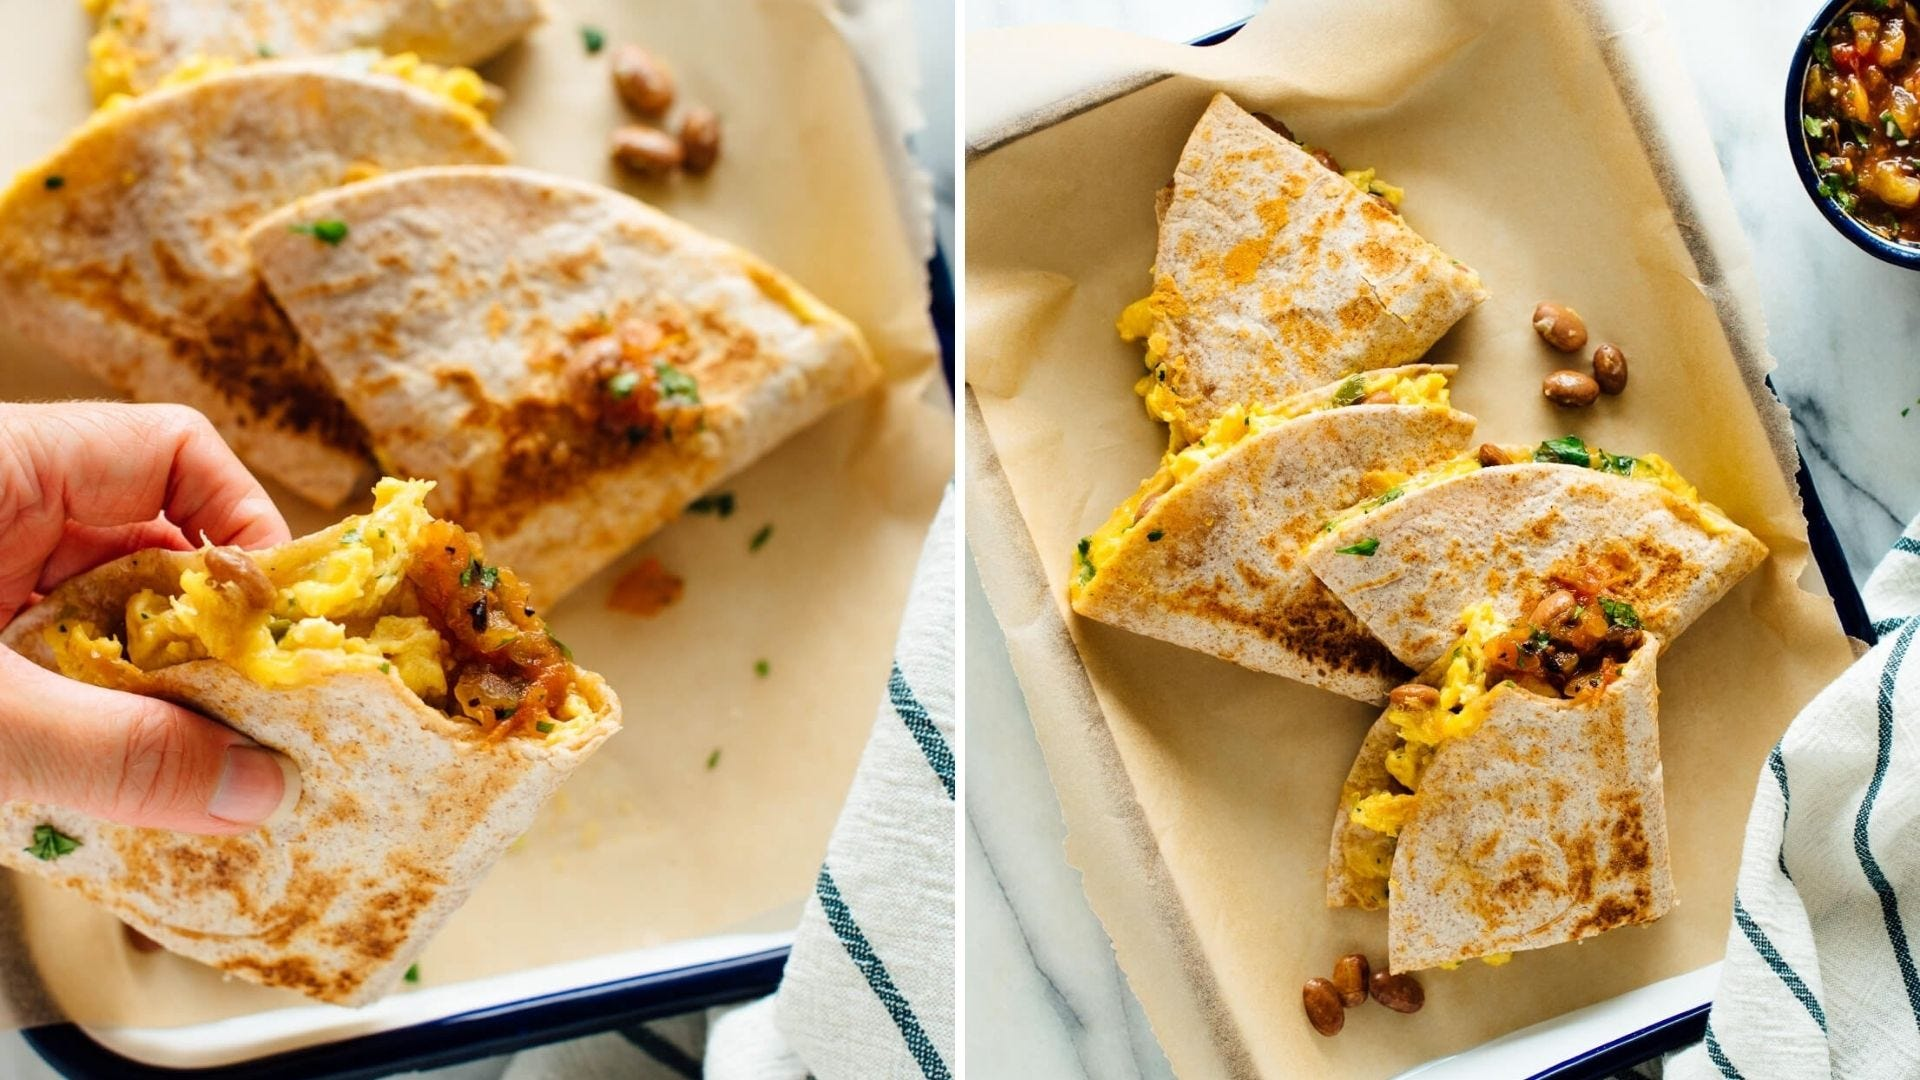 Folded quesadillas with eggs and sausage